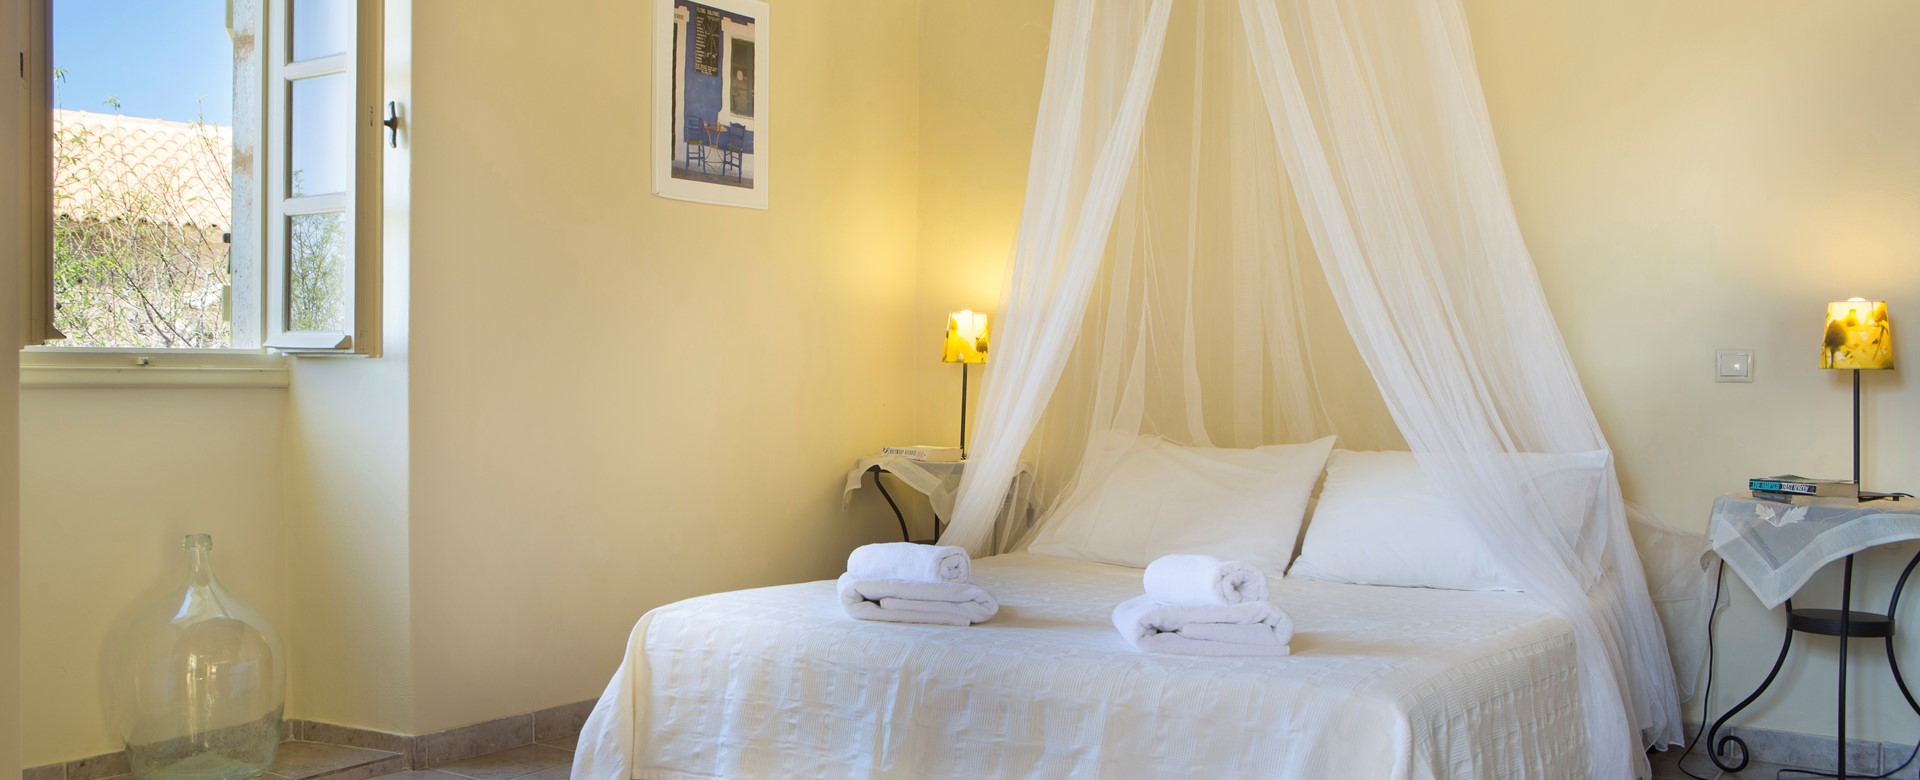 Master bedroom with king sized double bed perfect for a romantic holiday inside Lemoni Cottage, Fiscardo, Kefalonia